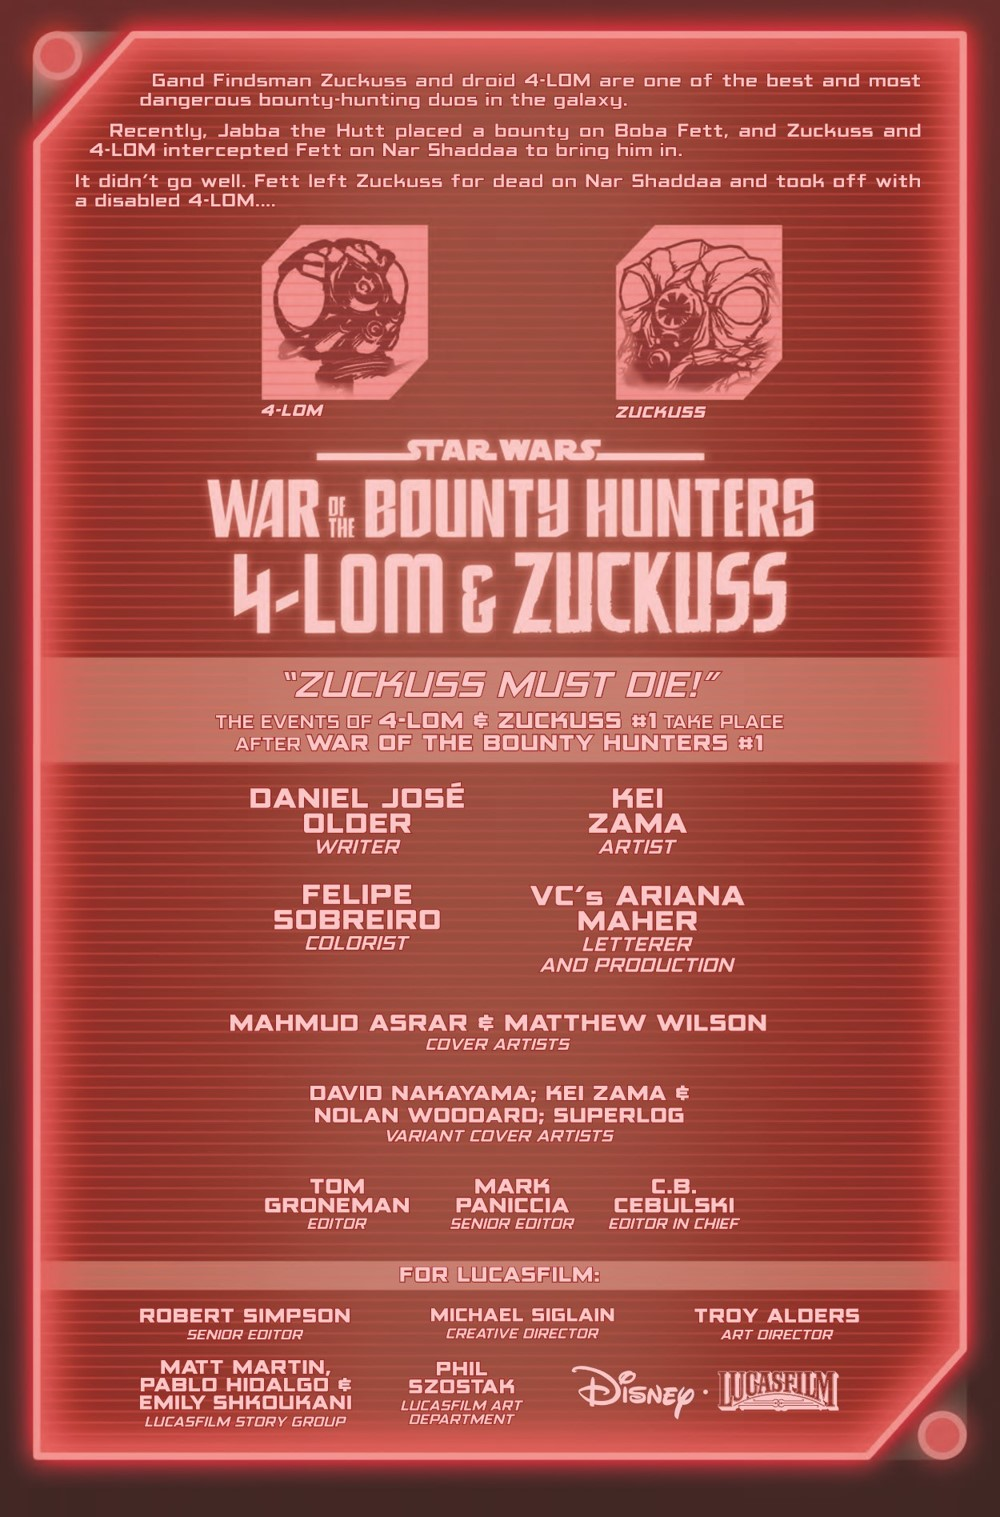 STWWAROTBH4LOMZUCK2021001_Preview-2 ComicList Previews: STAR WARS WAR OF THE BOUNTY HUNTERS 4-LOM AND ZUCKUSS #1